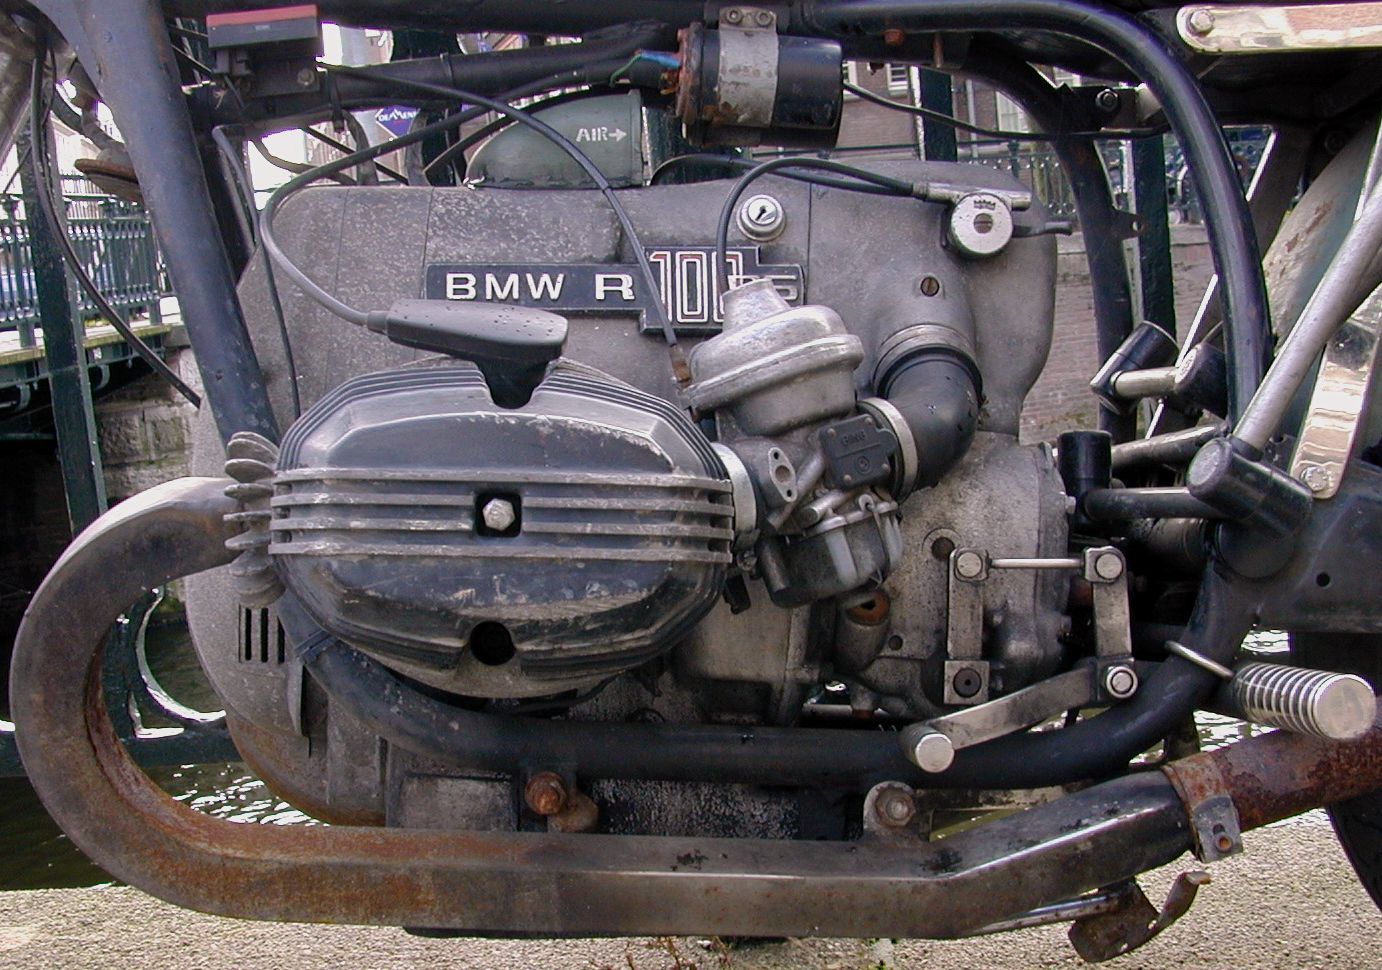 engine motor bmw typo typography air fume co2 spark sparkplug cilinder tubes tube green metal rust city air mechanics